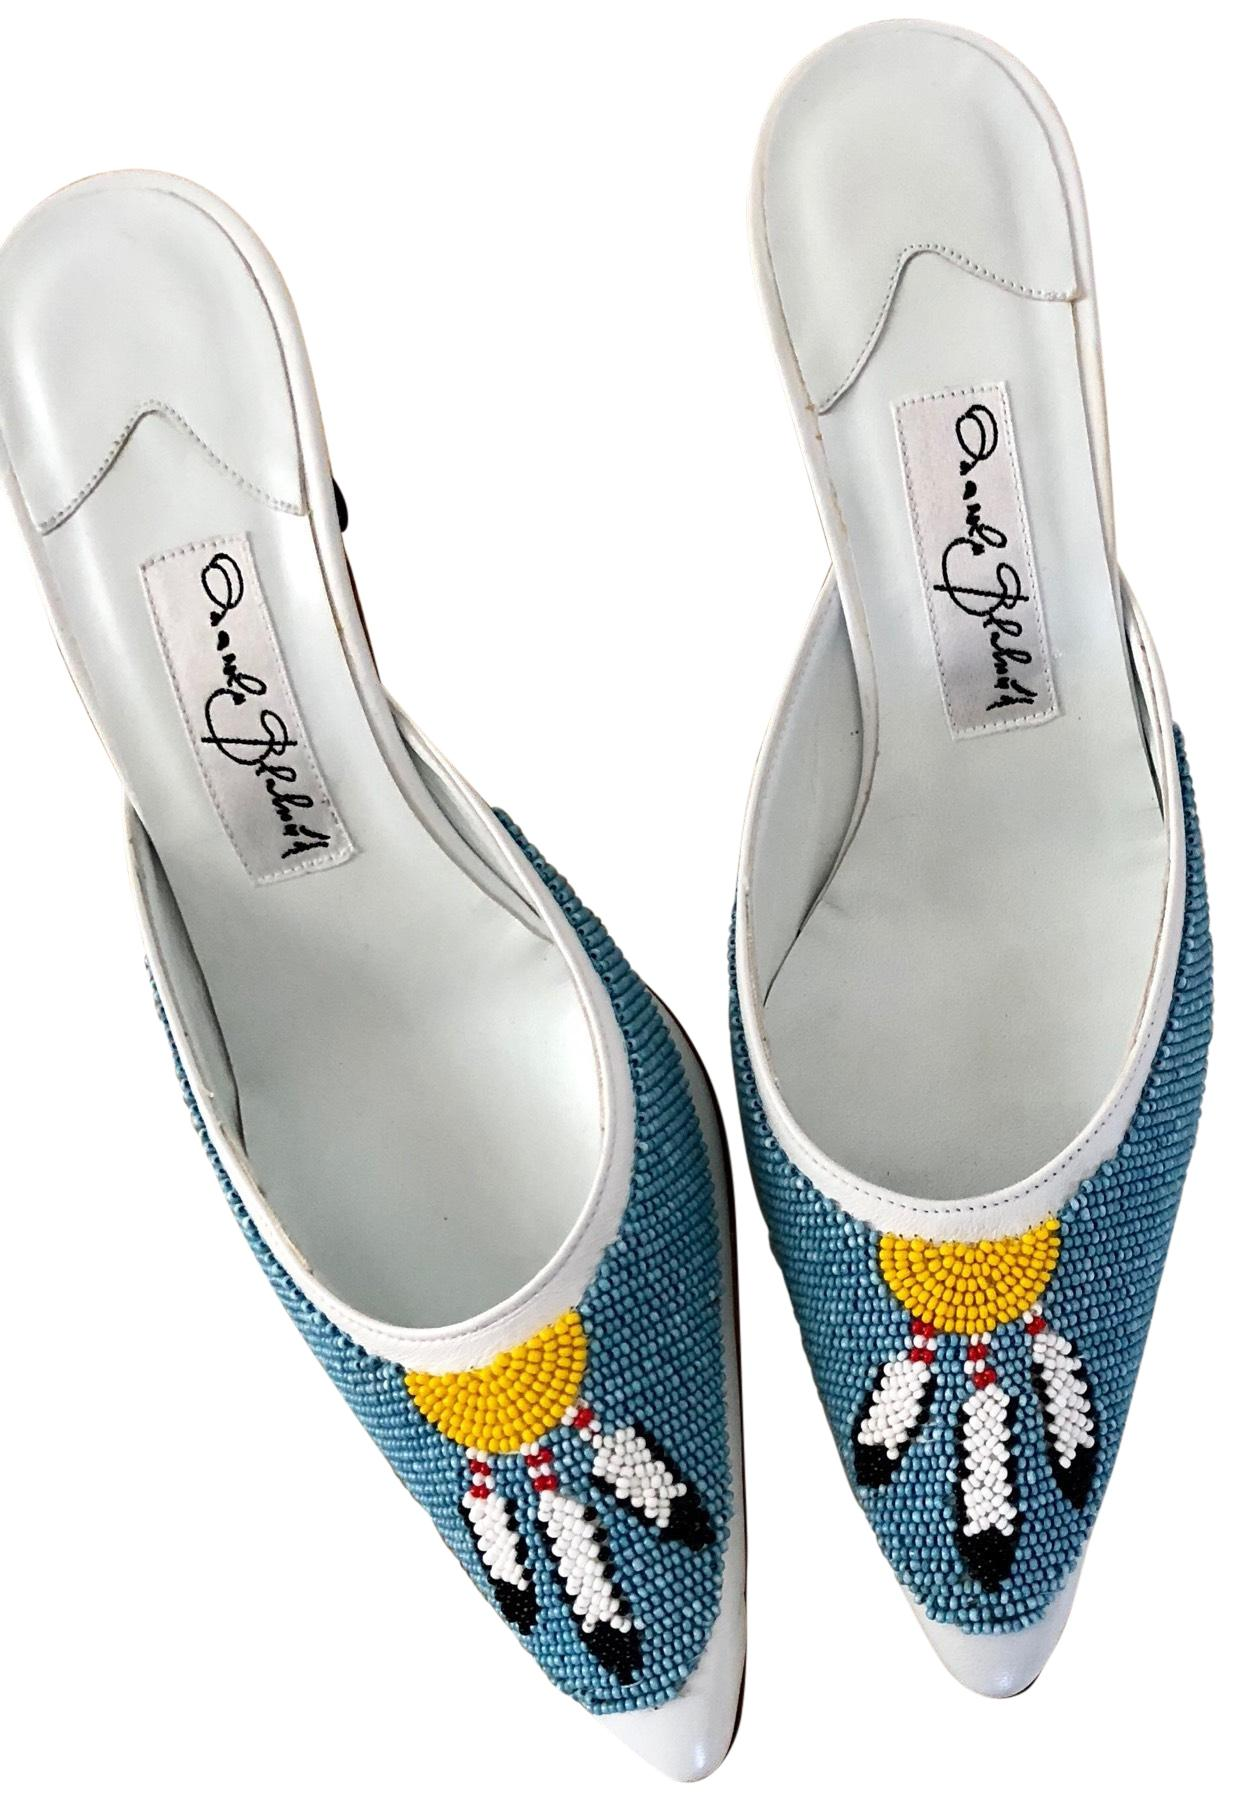 Manolo Blahnik White and Blue Beaded Feather Mules/Slides Size EU 37.5 (Approx. US 7.5) Regular (M, B)